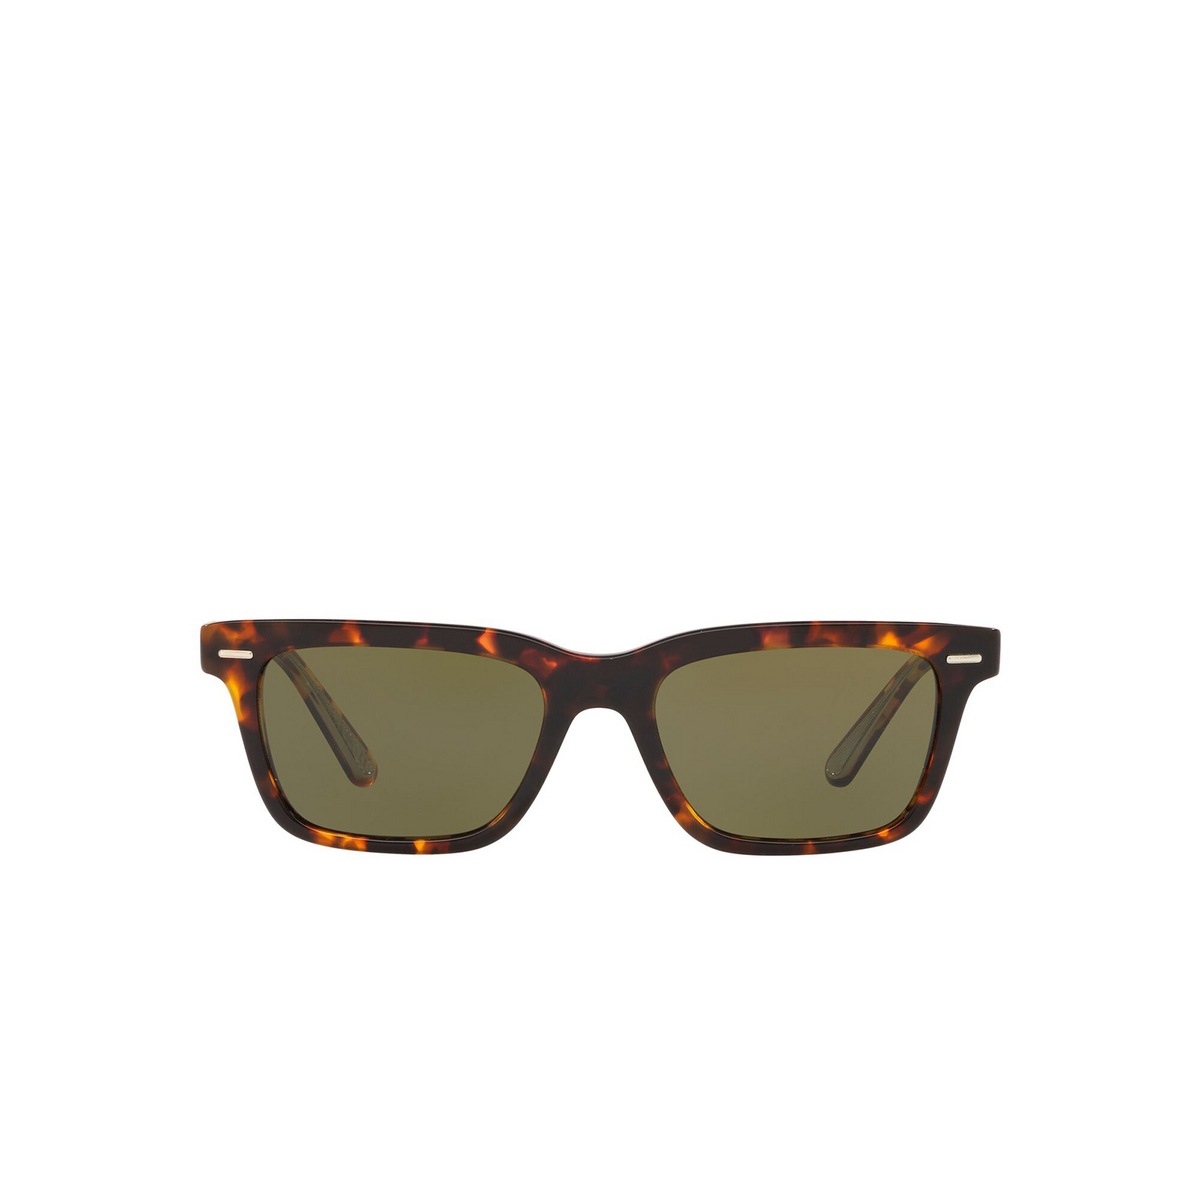 Oliver Peoples® Square Sunglasses: Ba Cc OV5388SU color Whiskey Tortoise 166352 - front view.